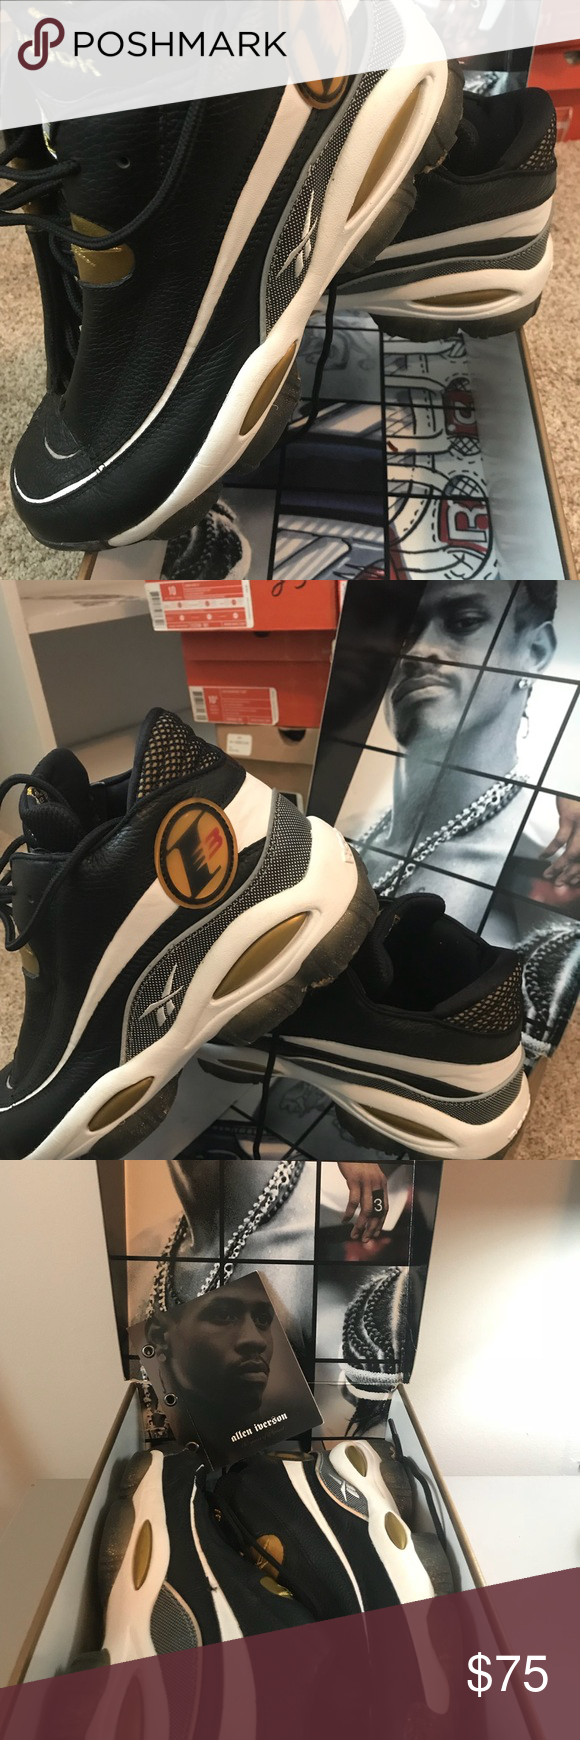 af37d10fb8cd Men s Allen Iverson 3 AI 10th anniversary THE ANSWER DMX 10 Gently worn  -Black white gold clear Size 10 Men s Reebok Reebok Shoes Sneakers